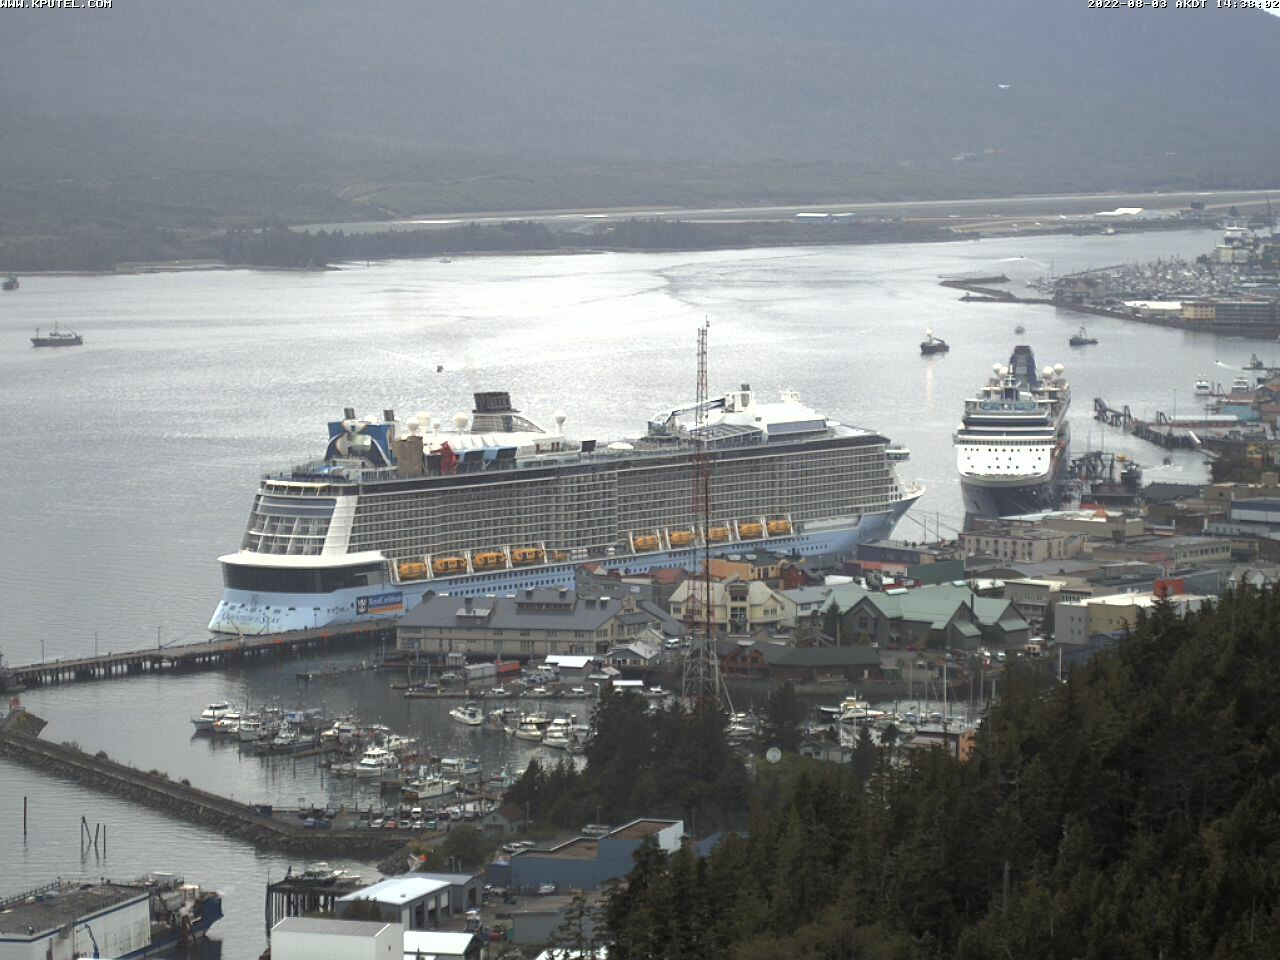 Live webcam from Thomas Basin from the Alaska Fish House